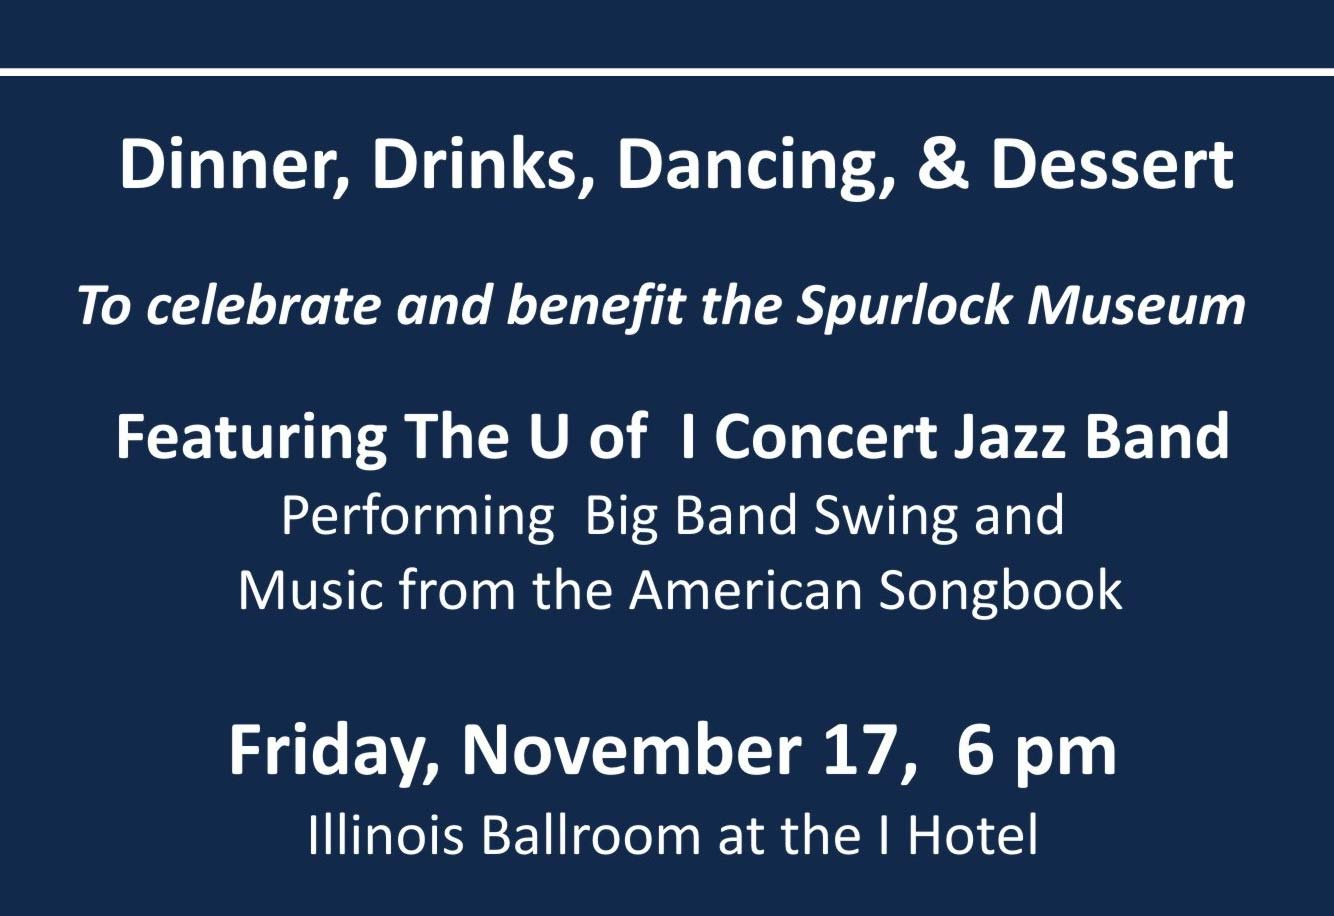 Spurlock Museum Gala Innovation and Syncopation details (repeated in link)